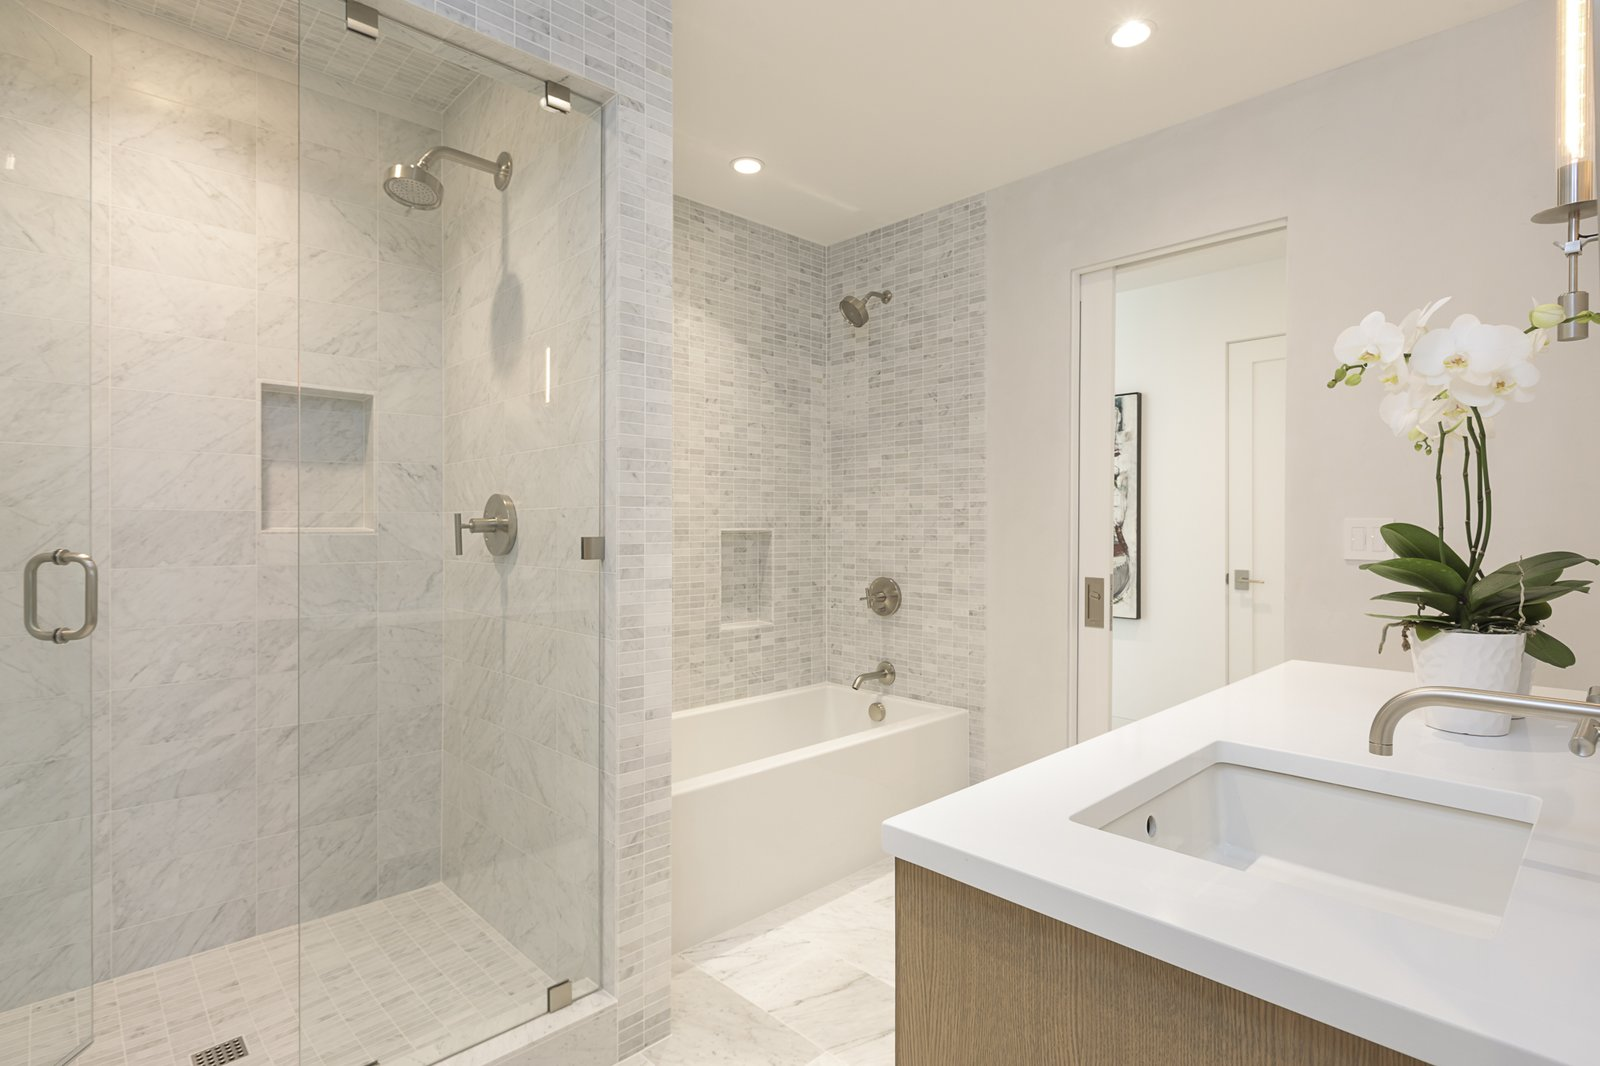 Bath Room, Recessed Lighting, Alcove Tub, Quartzite Counter, Mosaic Tile Wall, Enclosed Shower, Full Shower, and Undermount Sink More so, a bathroom was added to the suite.   Photo 19 of 24 in An Iconic Portland Midcentury Is Seeking a New Owner For $1.6M